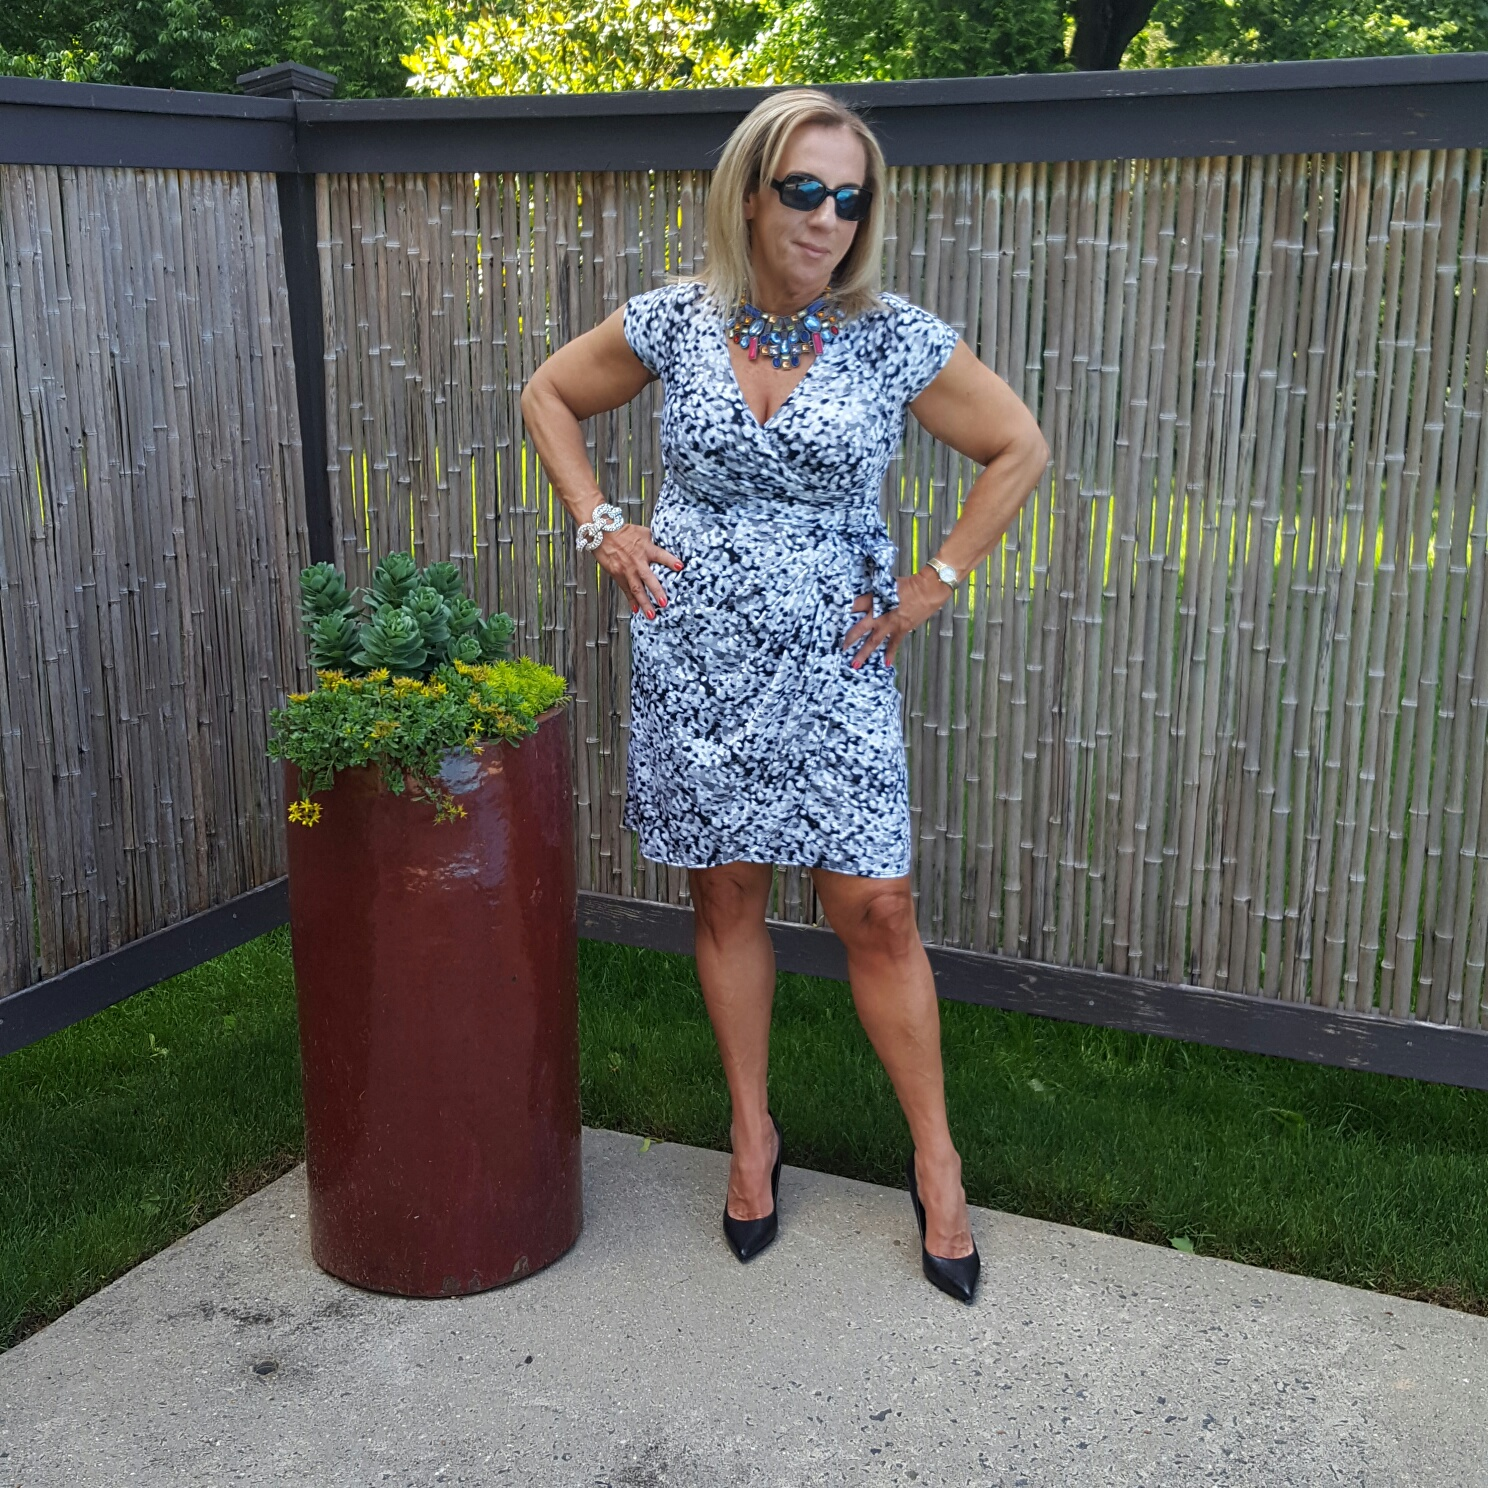 Over 50 dresses black and white standing - followPhyllis